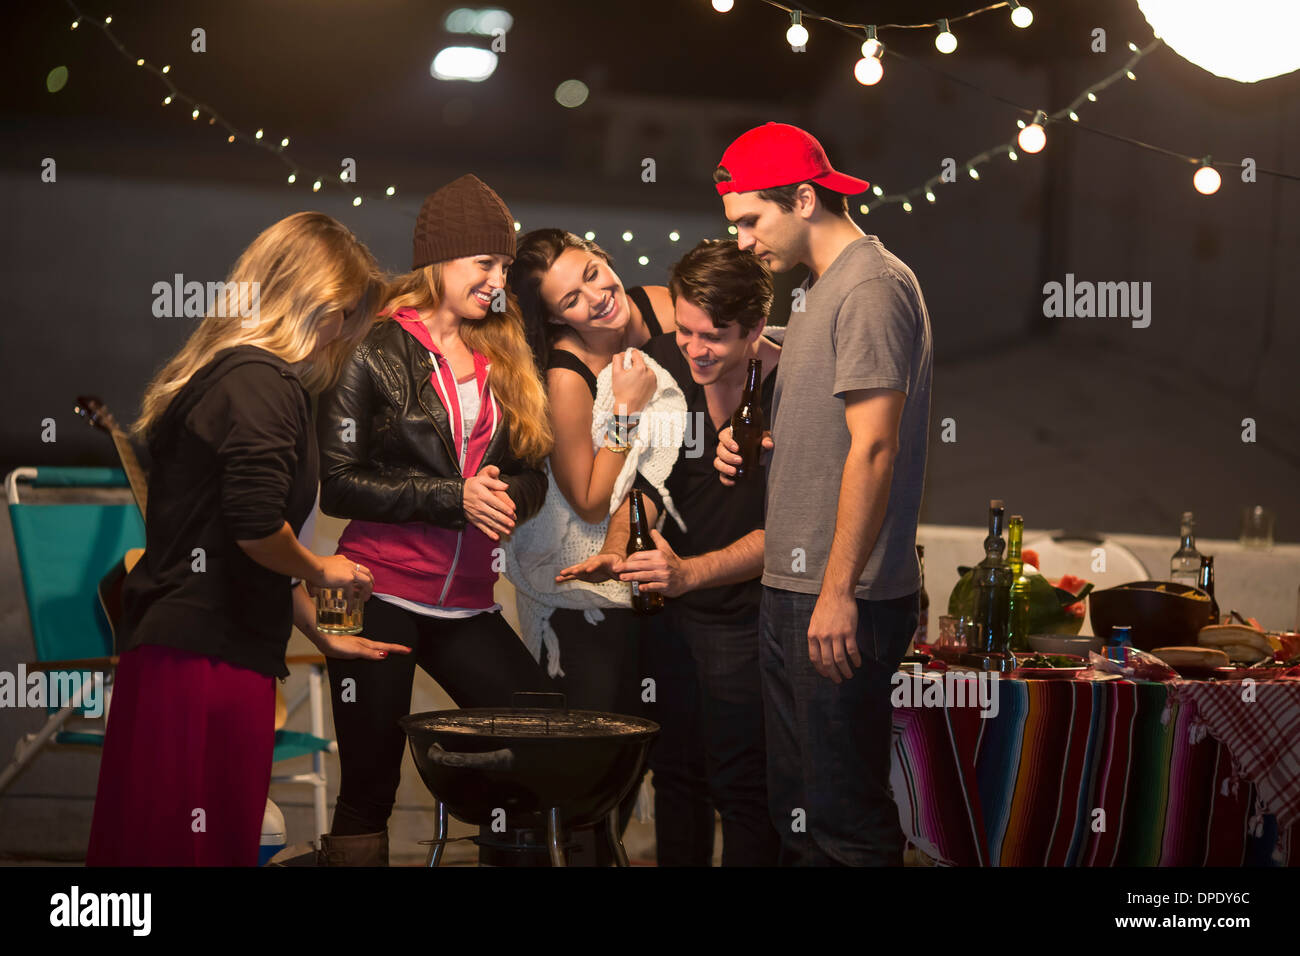 Young adult friends keeping warm at rooftop party - Stock Image